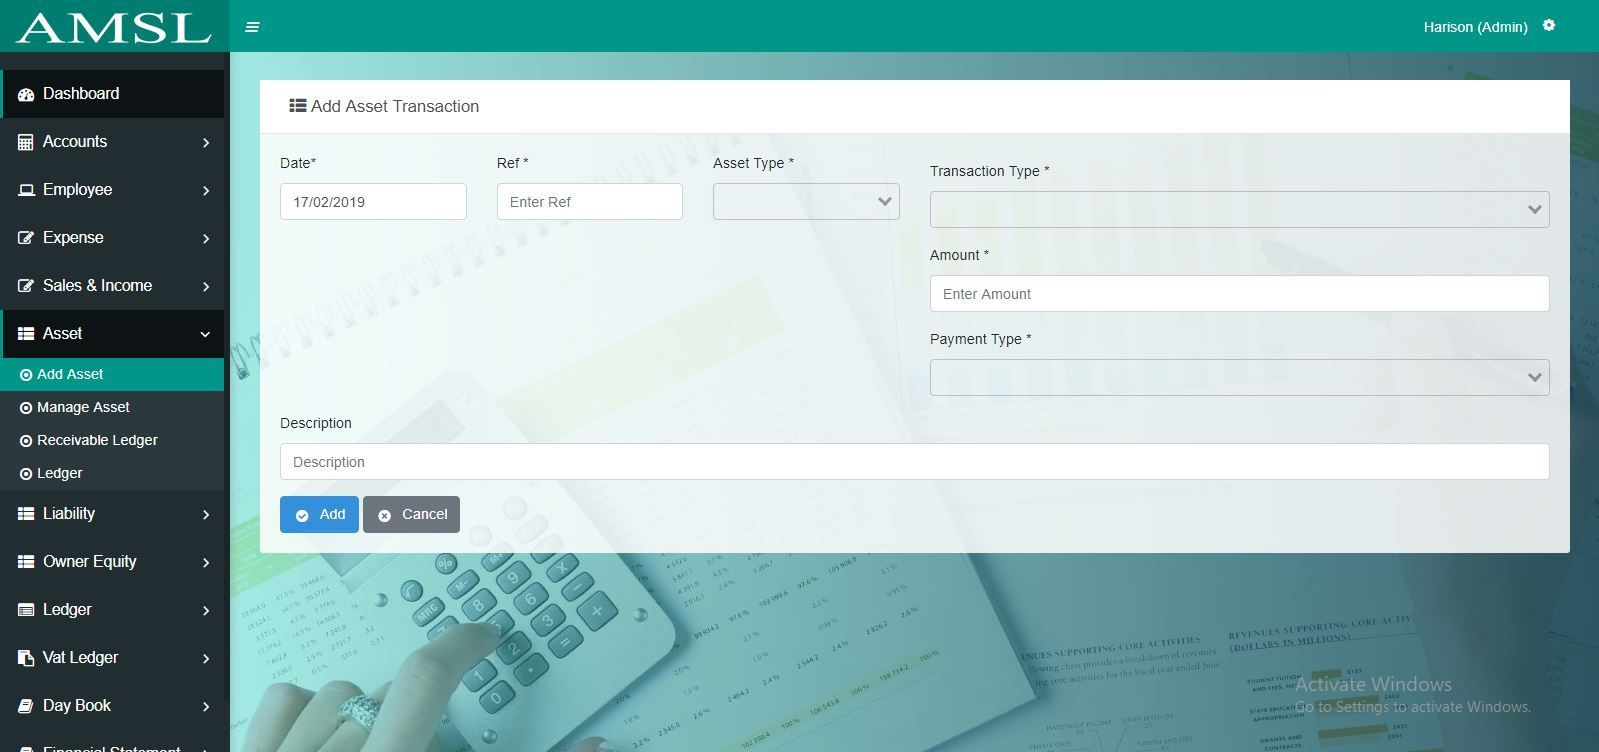 AMSL - Service Based Accounting Management System  Screenshot 1